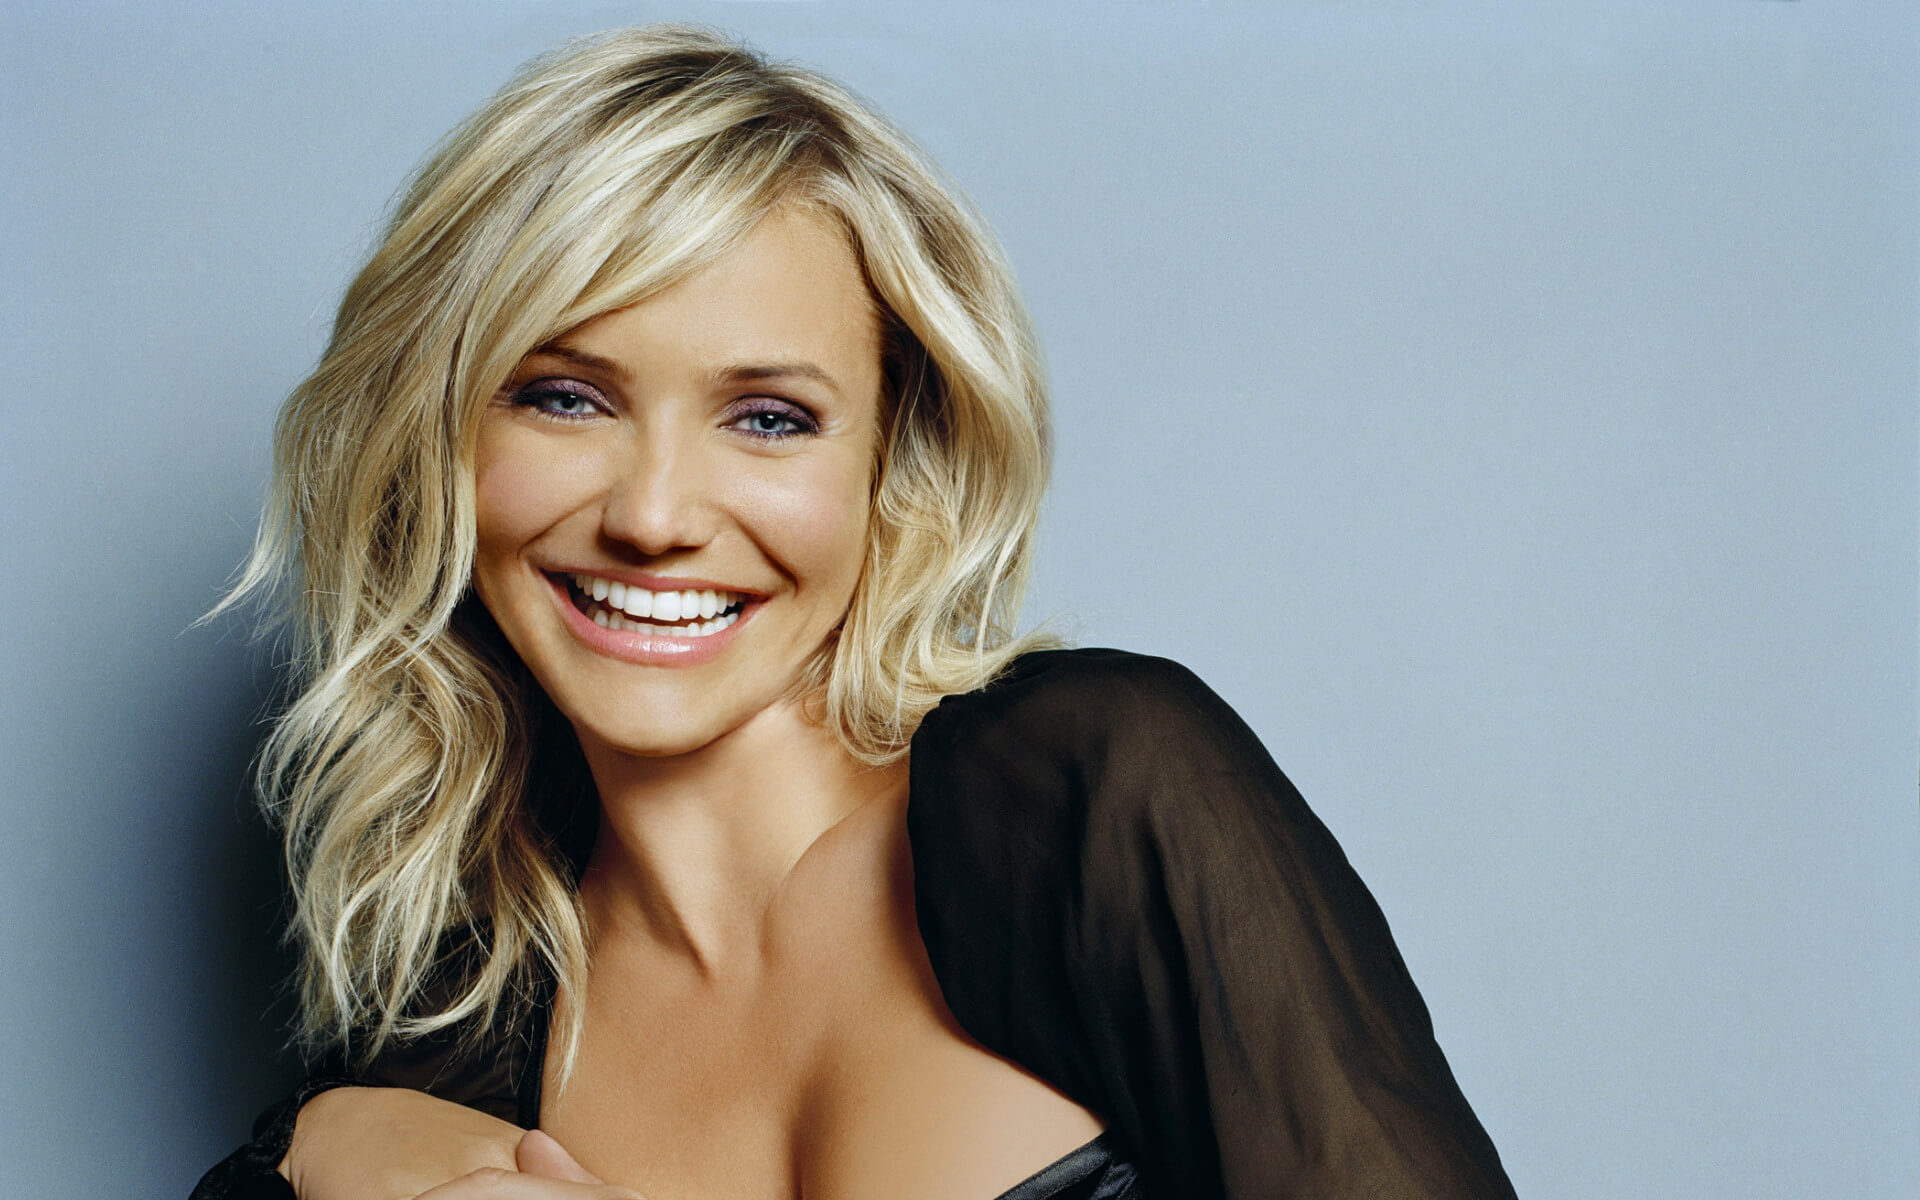 Cameron Diaz | All the action from the casino floor: news, views and more